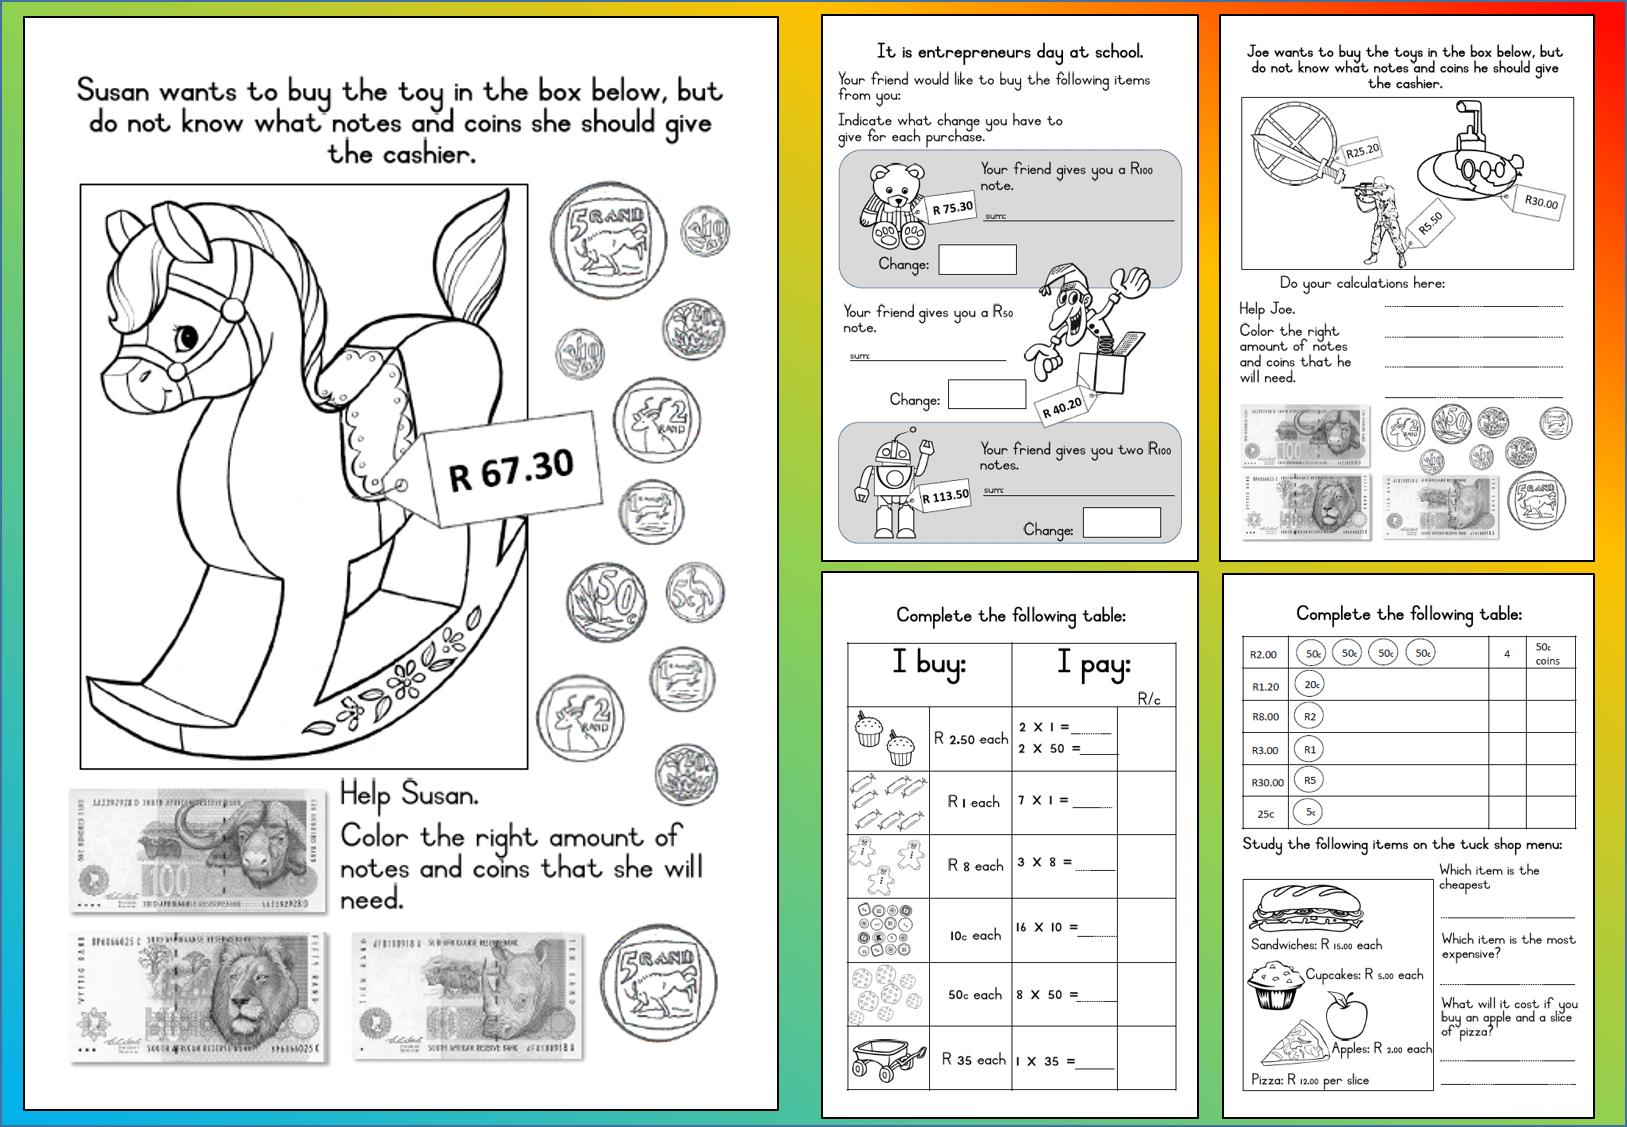 Year 7 Algebra Worksheets And Answers